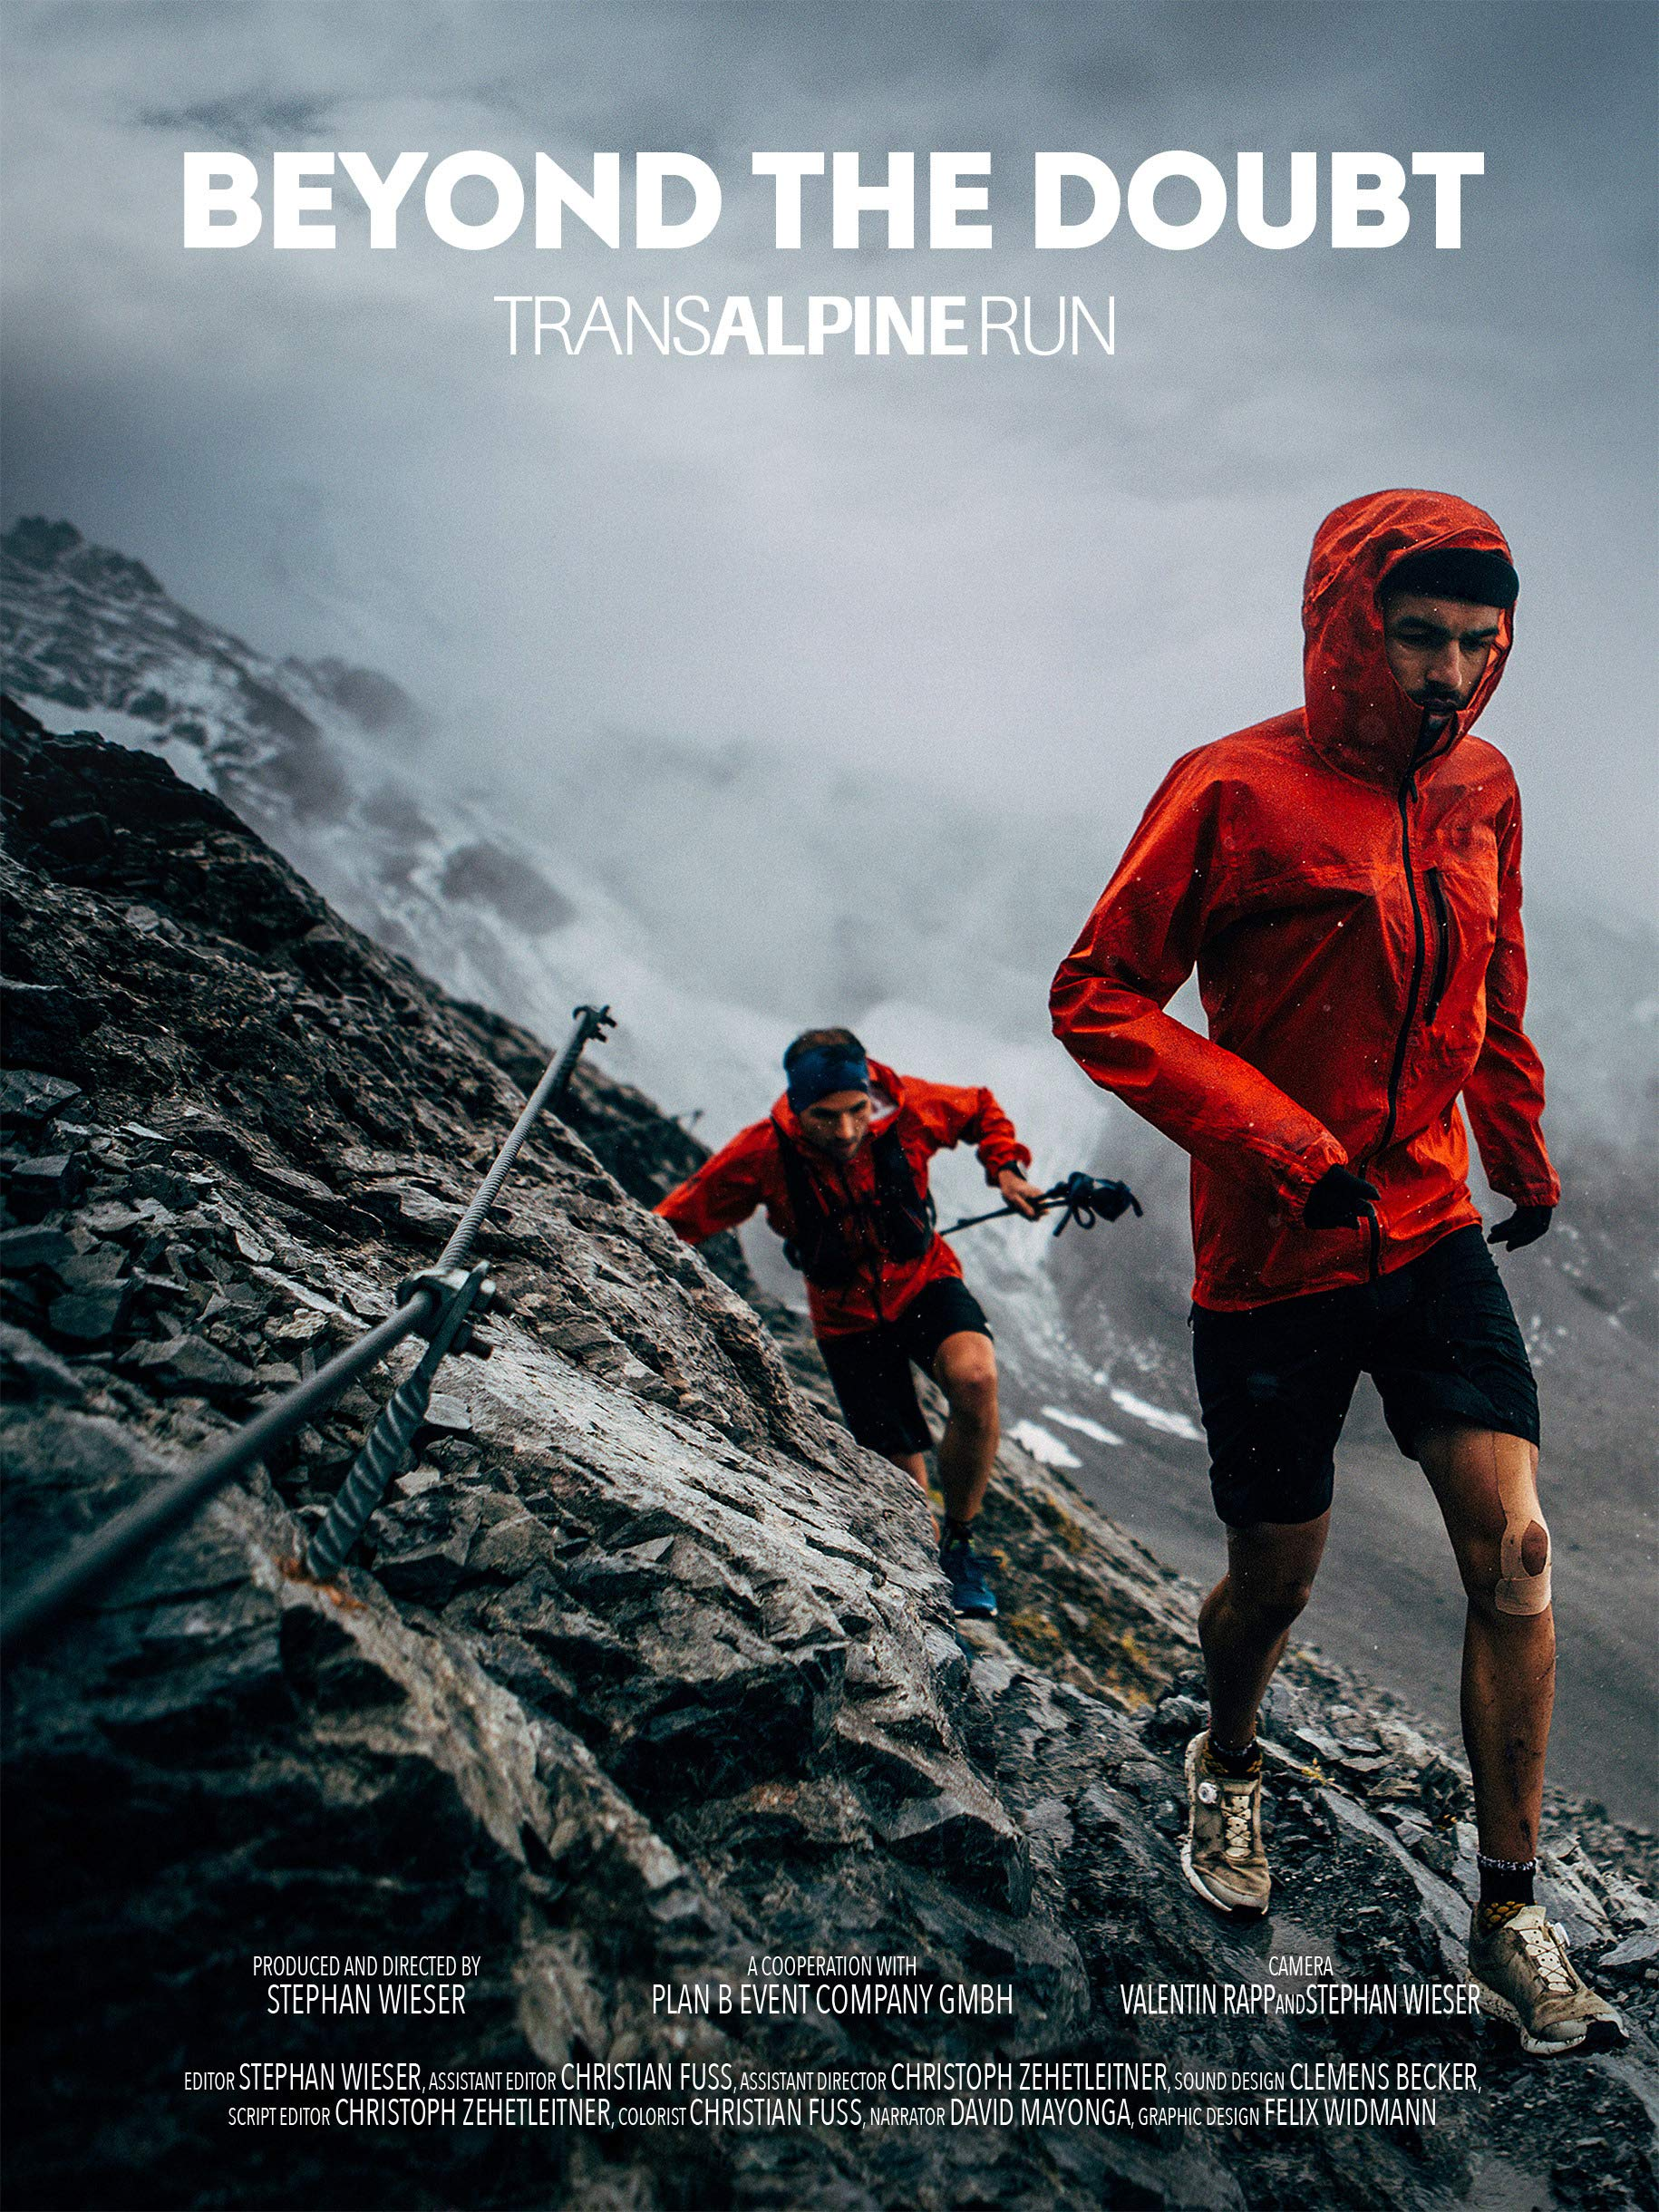 Beyond the Doubt - The Transalpine Run